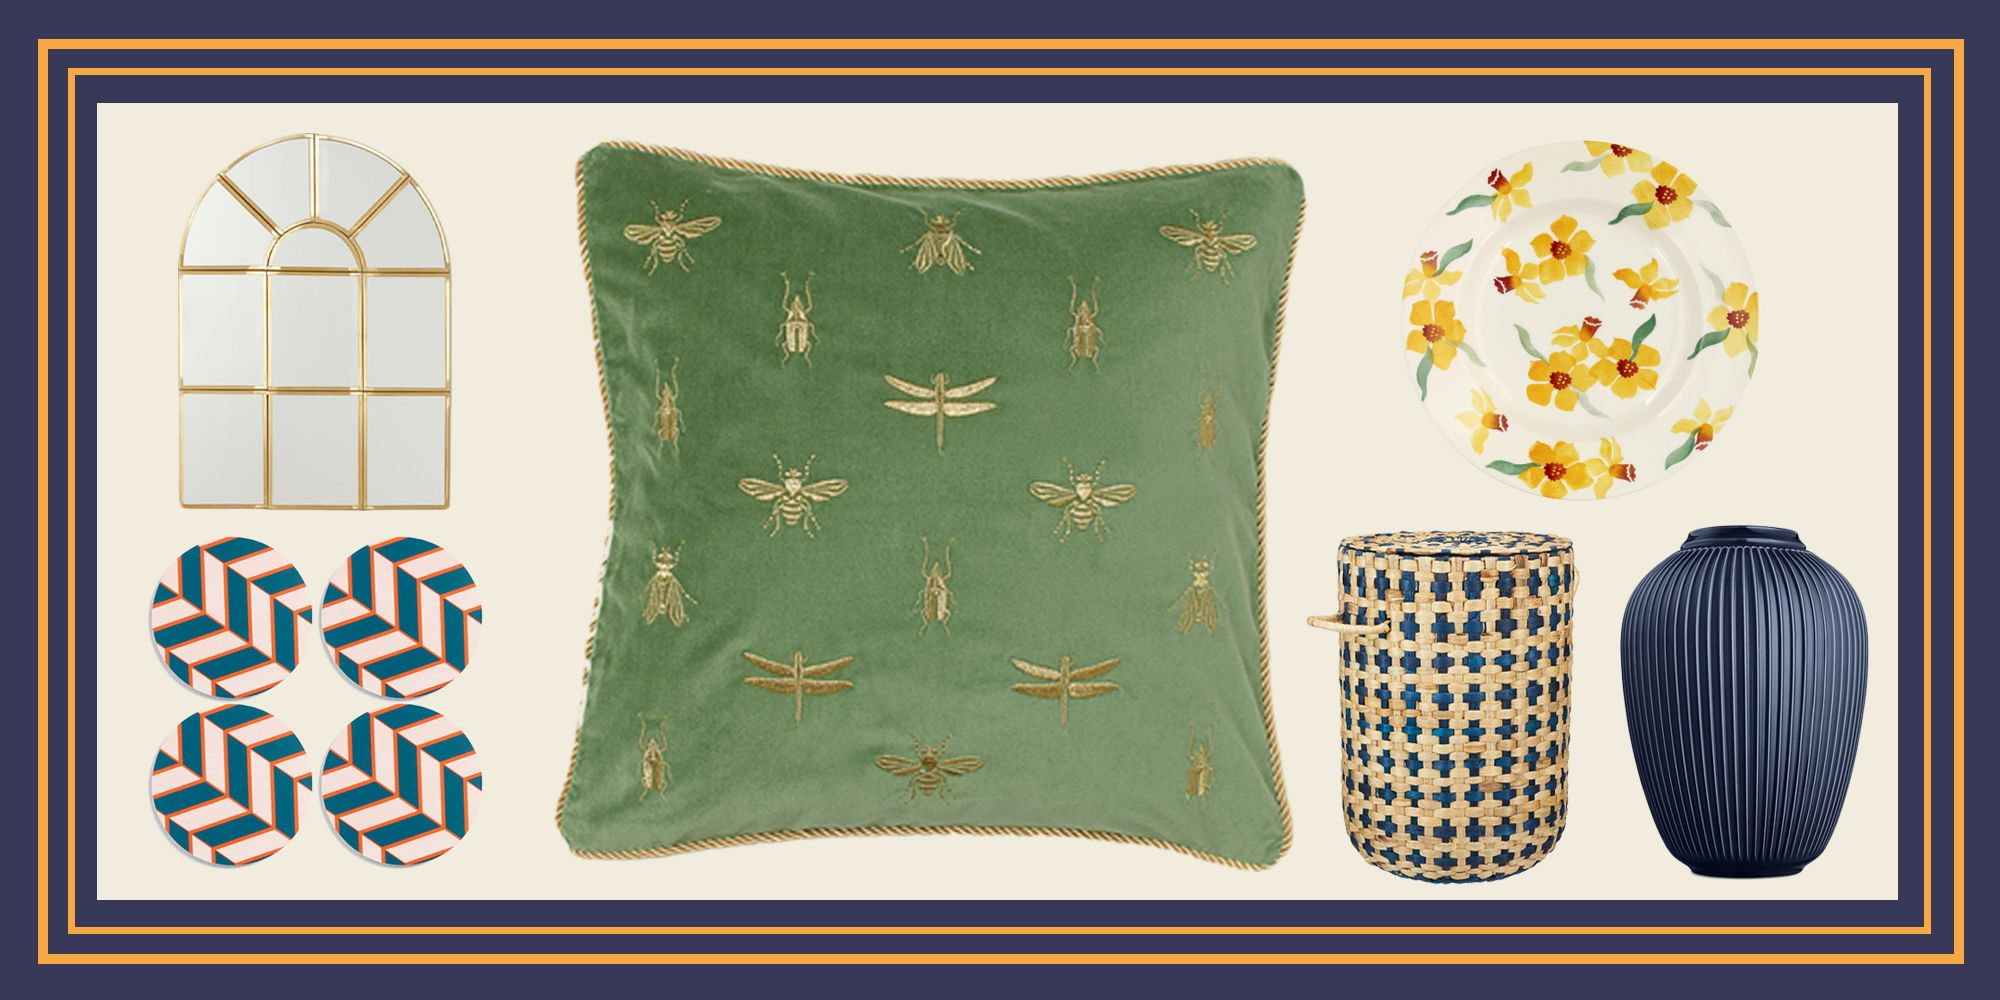 30 must-have home decor buys for spring/summer 2019